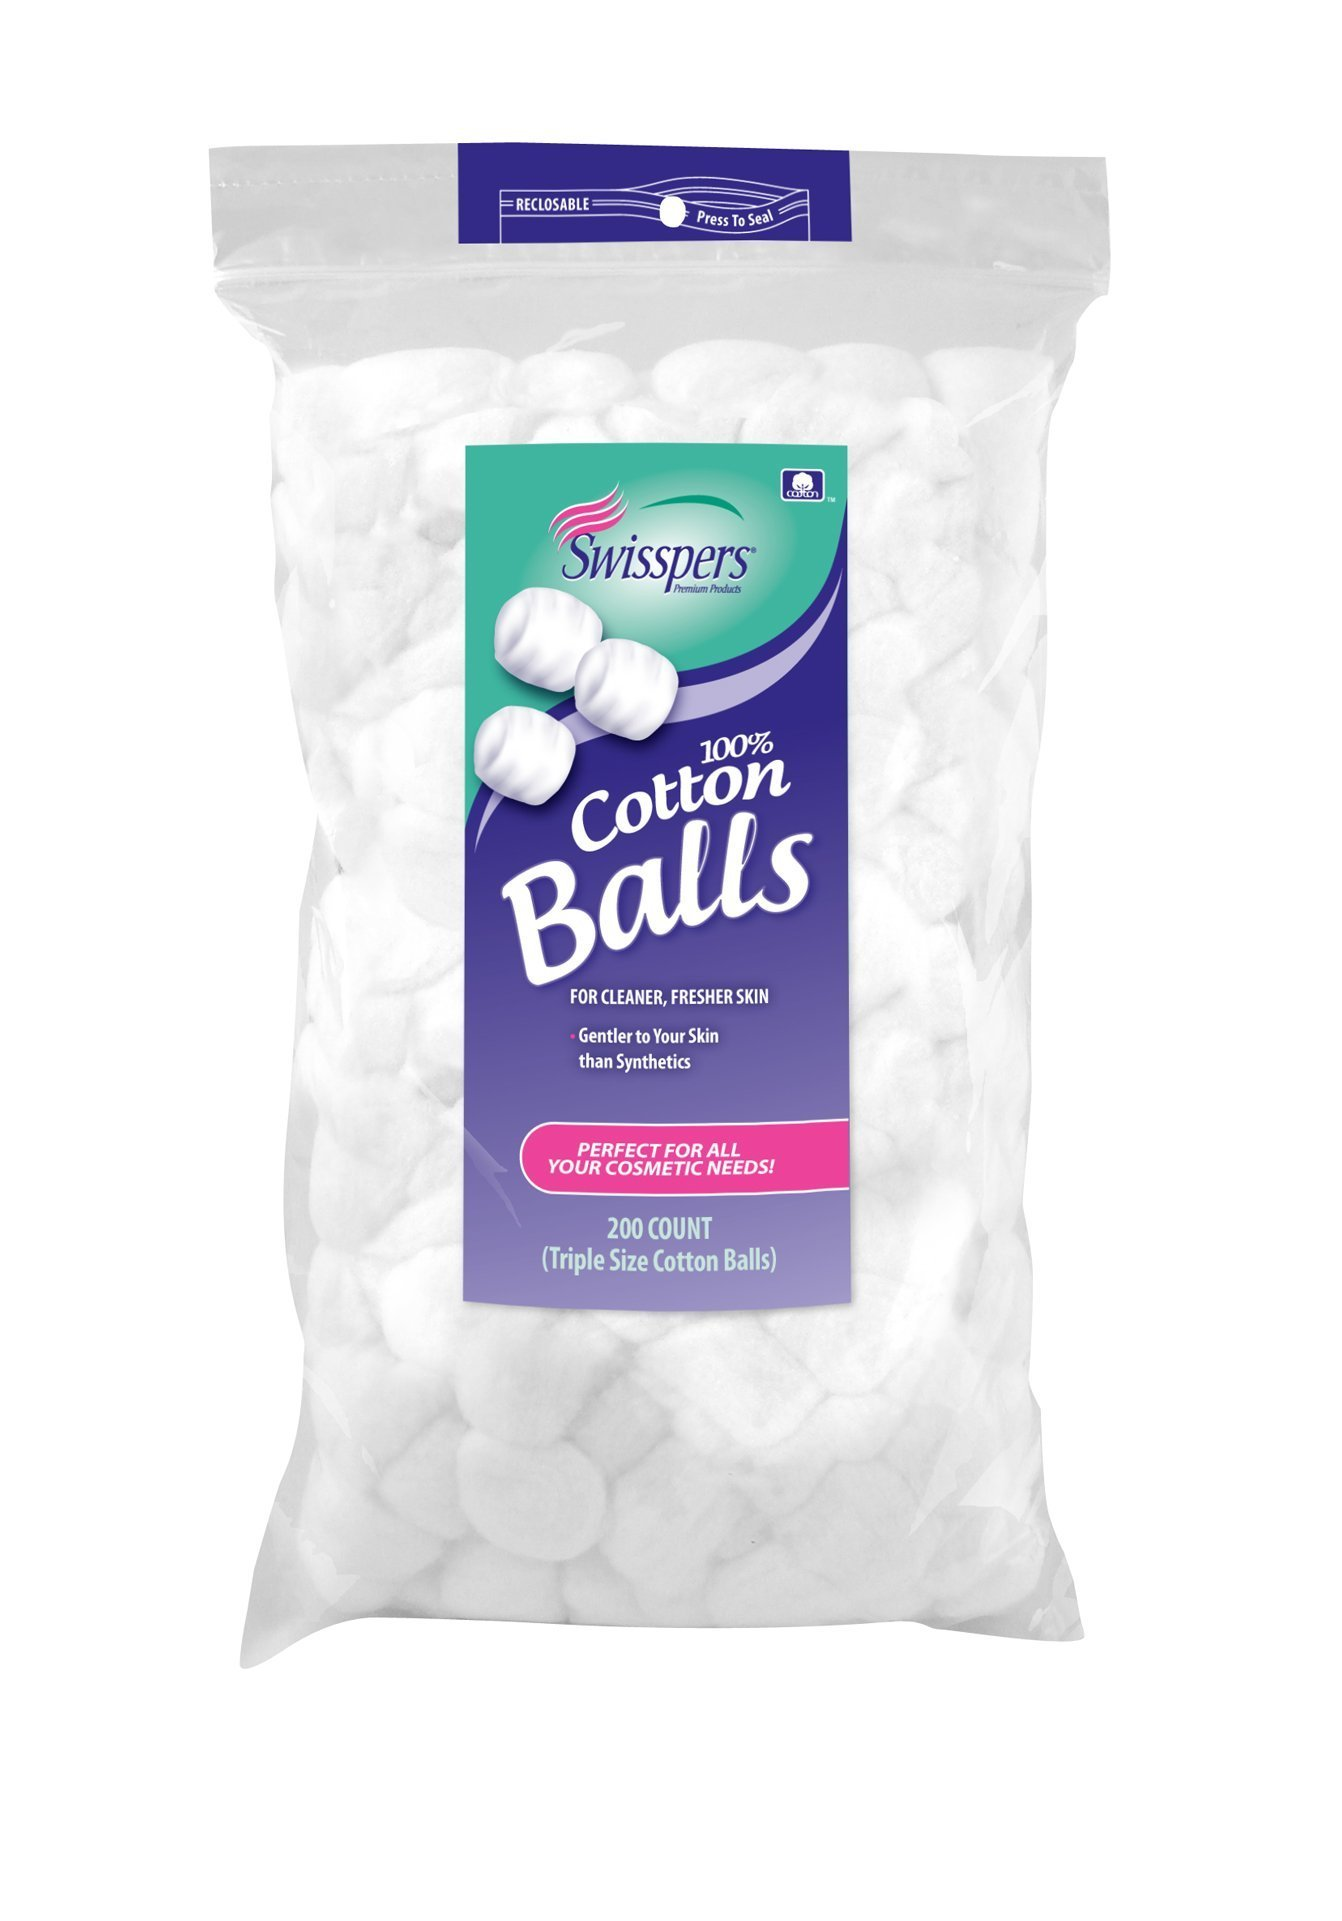 Swisspers Multi Care Cotton Balls, Triple Size, 200 Count, 4.75-Ounce (Pack of 24)